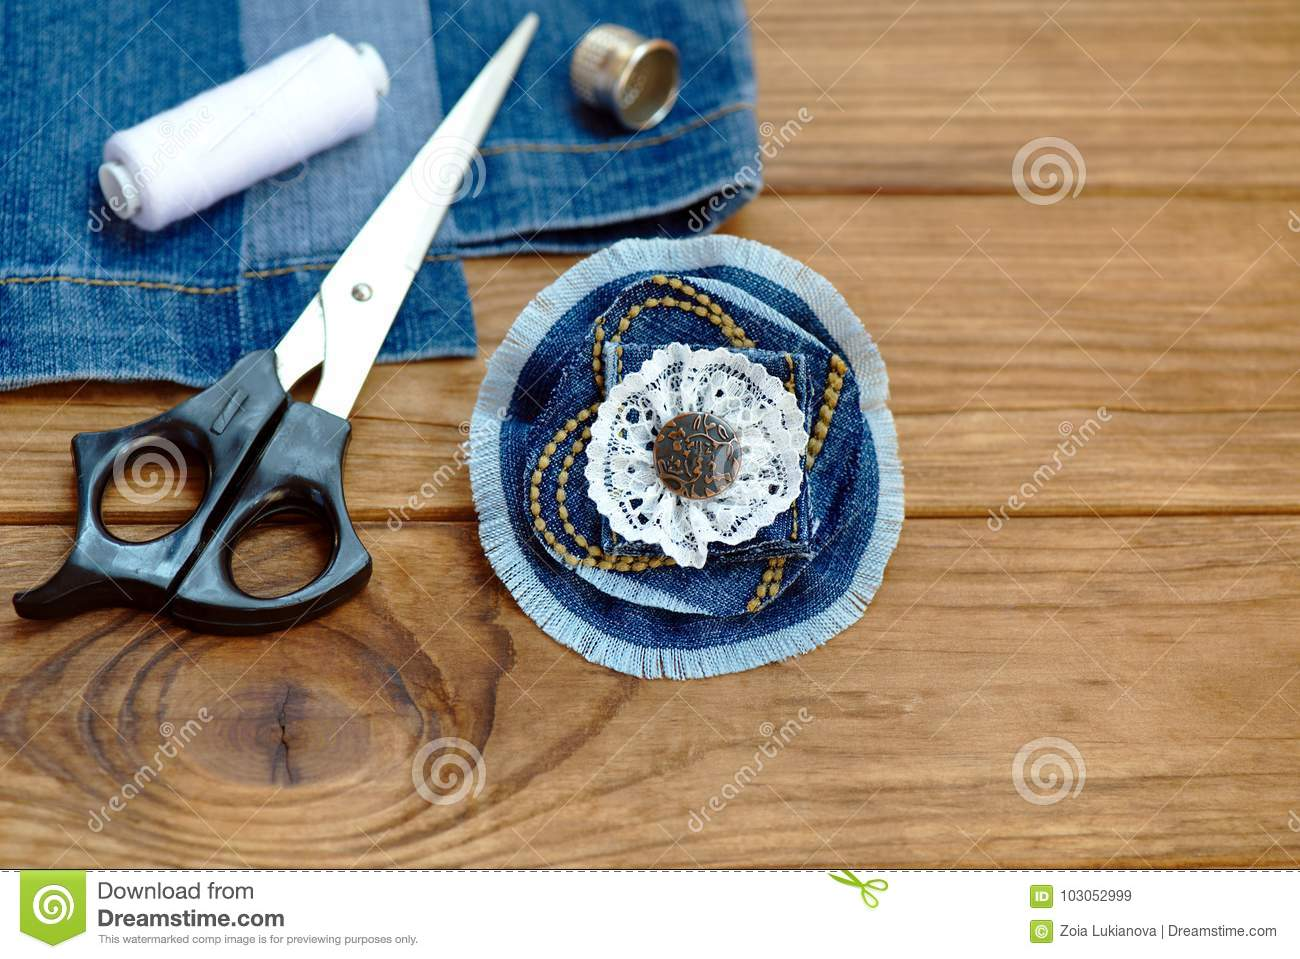 Craft Idea For Old Jeans Handicraft Denim Flower Brooch Scissors Thread Thimble Needle Female Old Jeans On A Wood Background Stock Image Image Of Background Blue 103052999